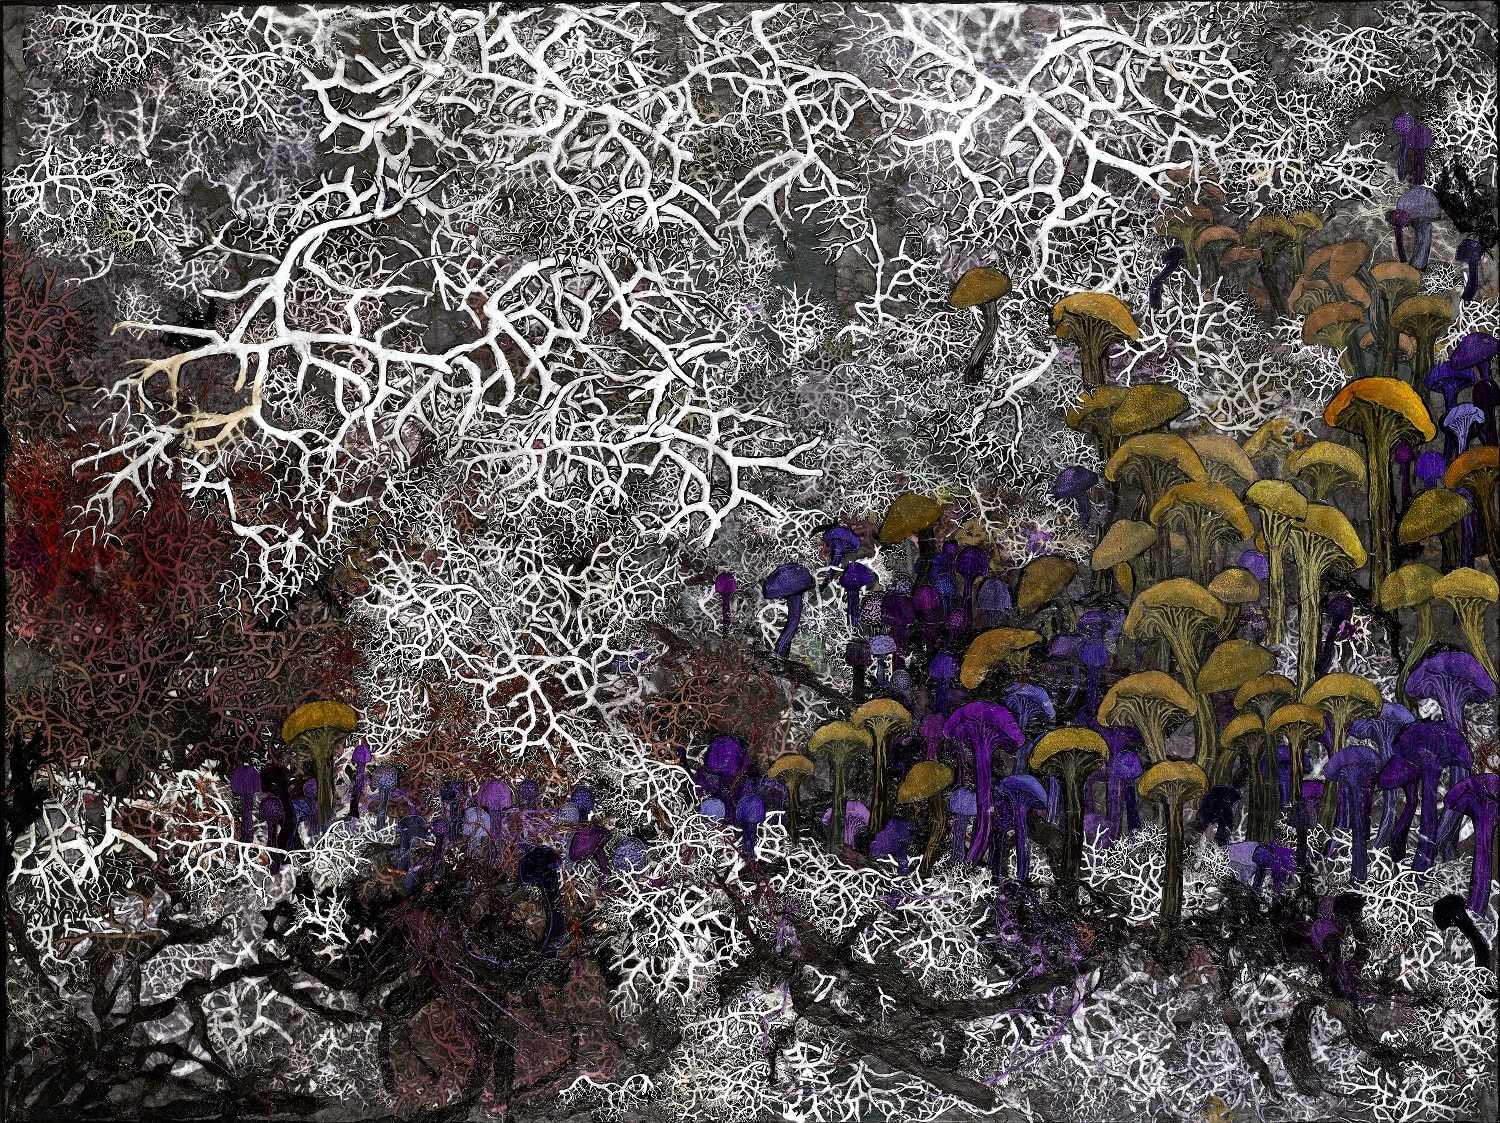 Rosemary Feit Covey, Amethyst Deceivers II, 2019 | Pavillon 54 Limited